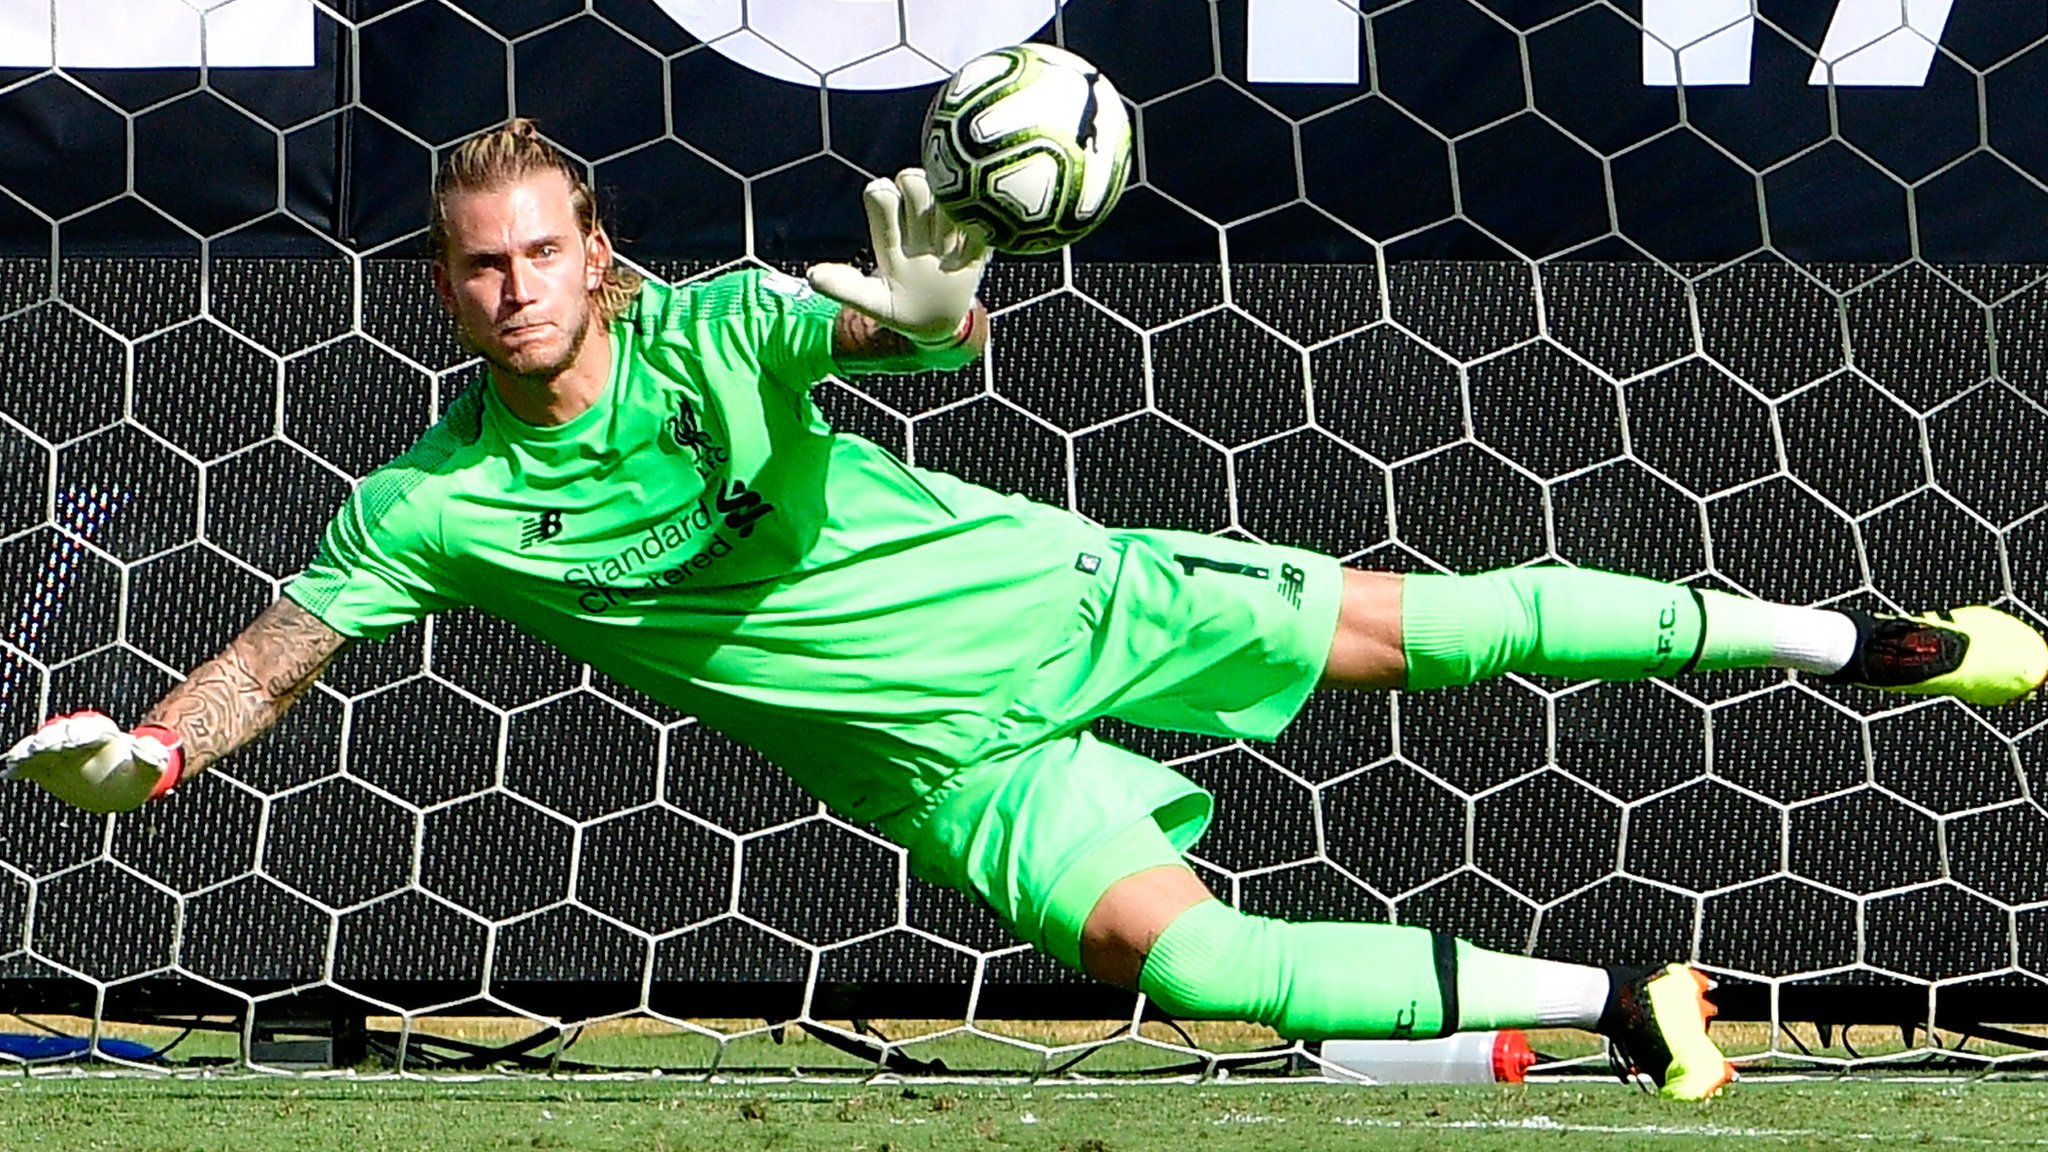 Liverpool's Karius set to join Besiktas on loan